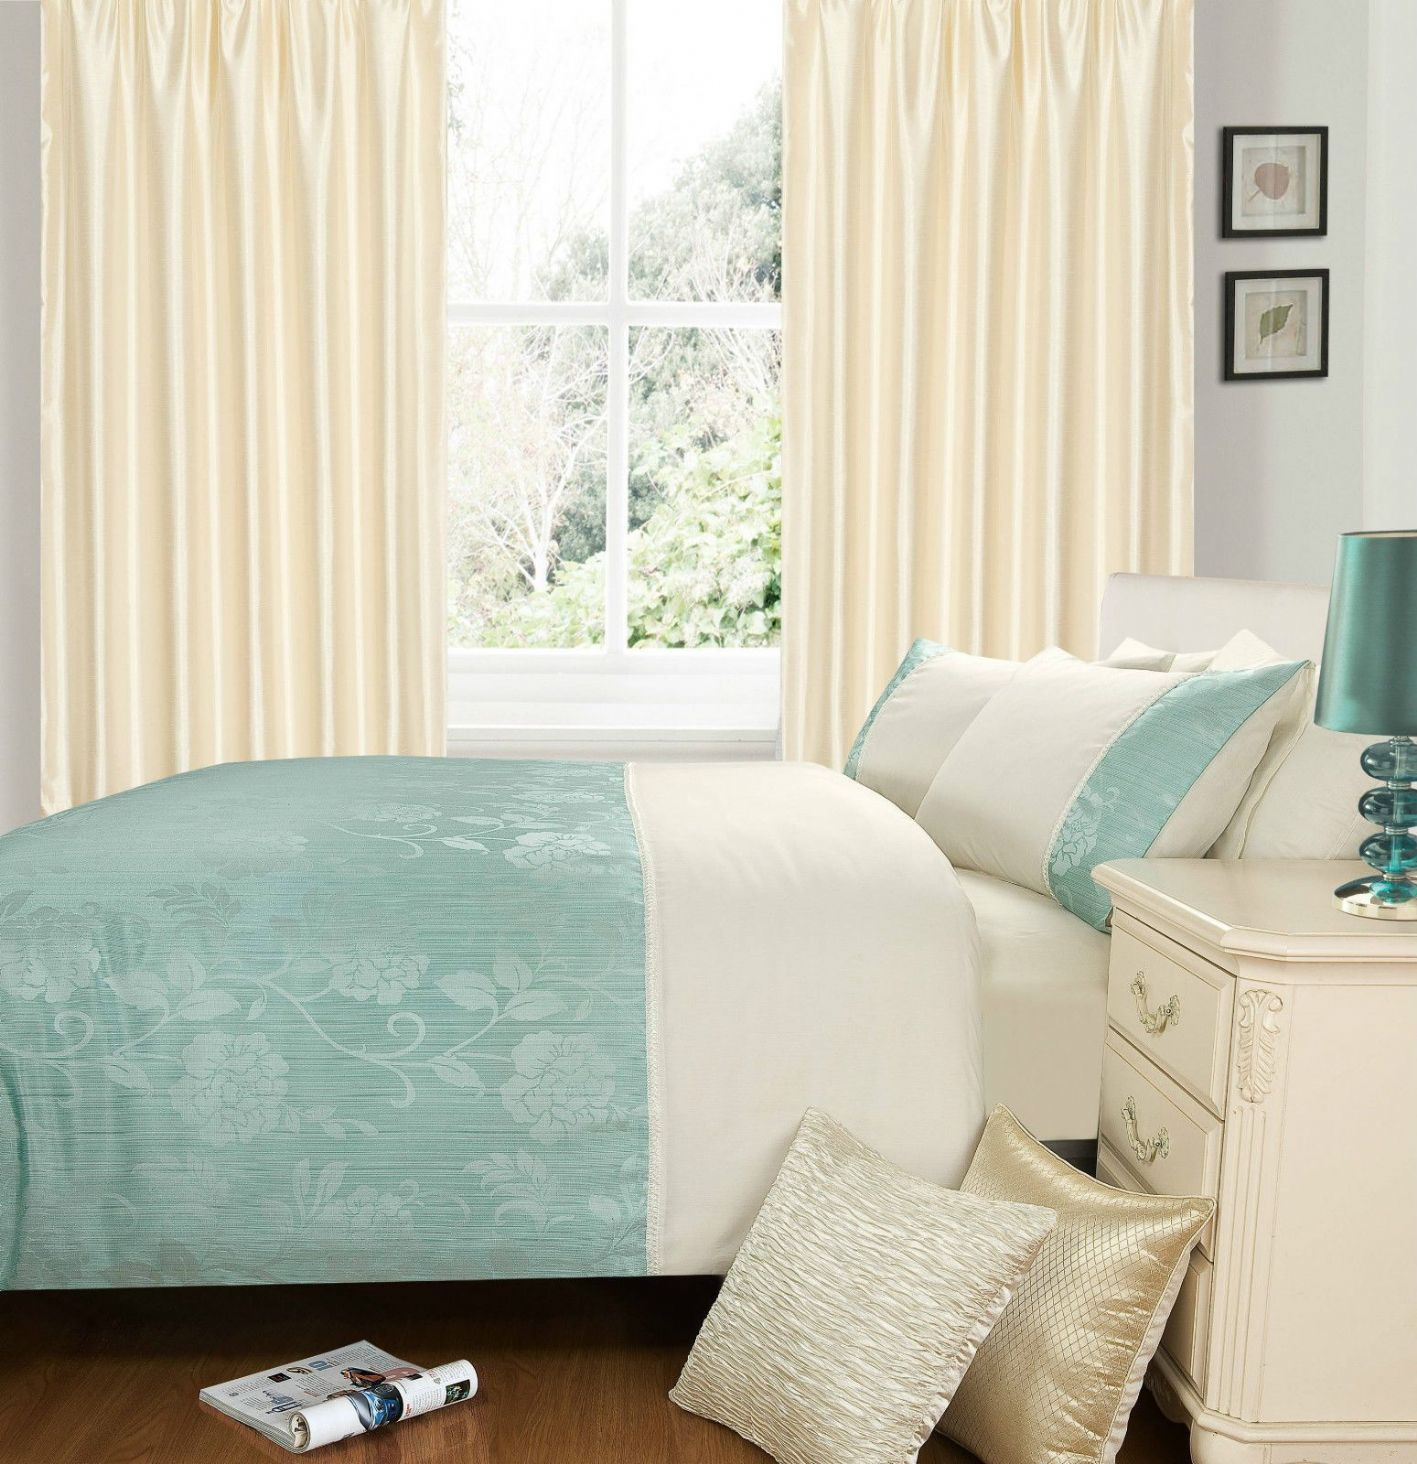 Make A Single Bedroom Special With A Super Stylish: DUCK EGG & CREAM COLOUR STYLISH DUVET COVER LUXURY